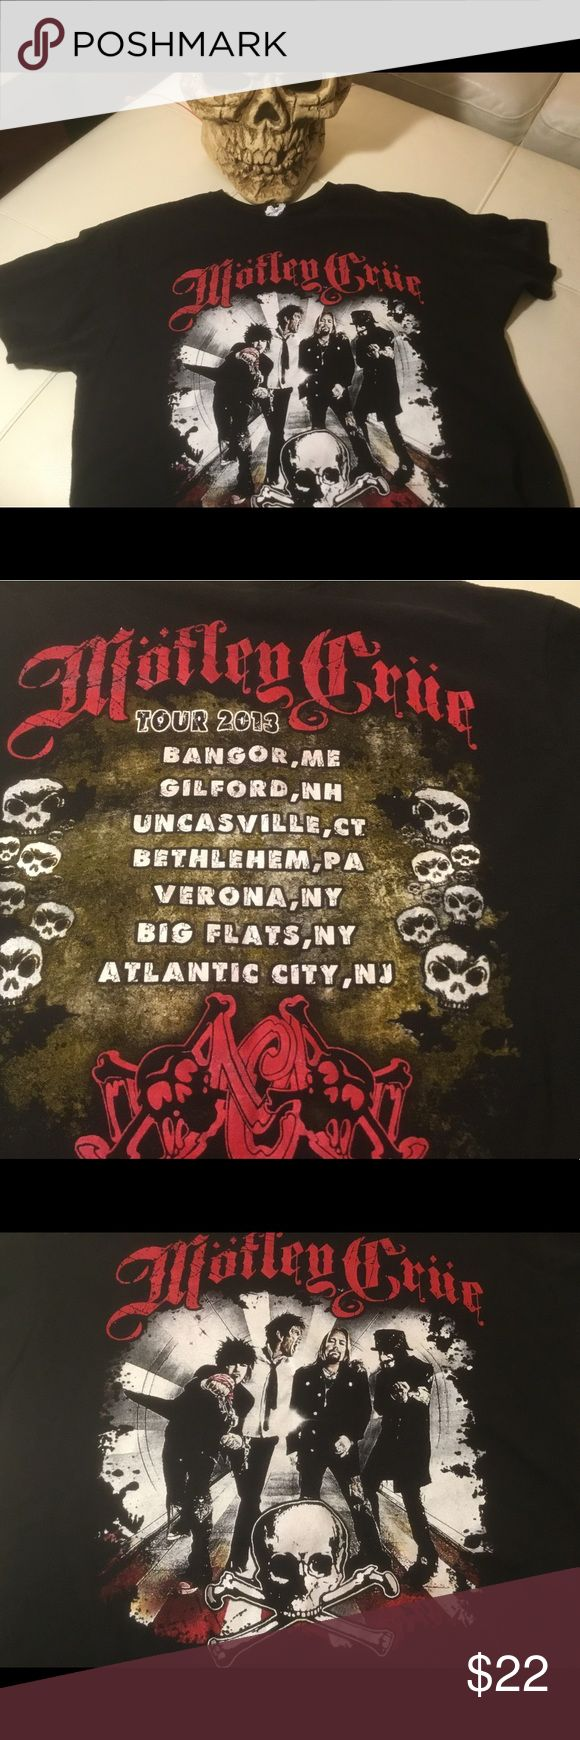 Motley Crue 2013 Tour Black Men's Med/Ladies Rock! Motley Crue 2013 Tour Black Men's Med/Ladies Can also Rock this T Delta Shirts Tees - Short Sleeve